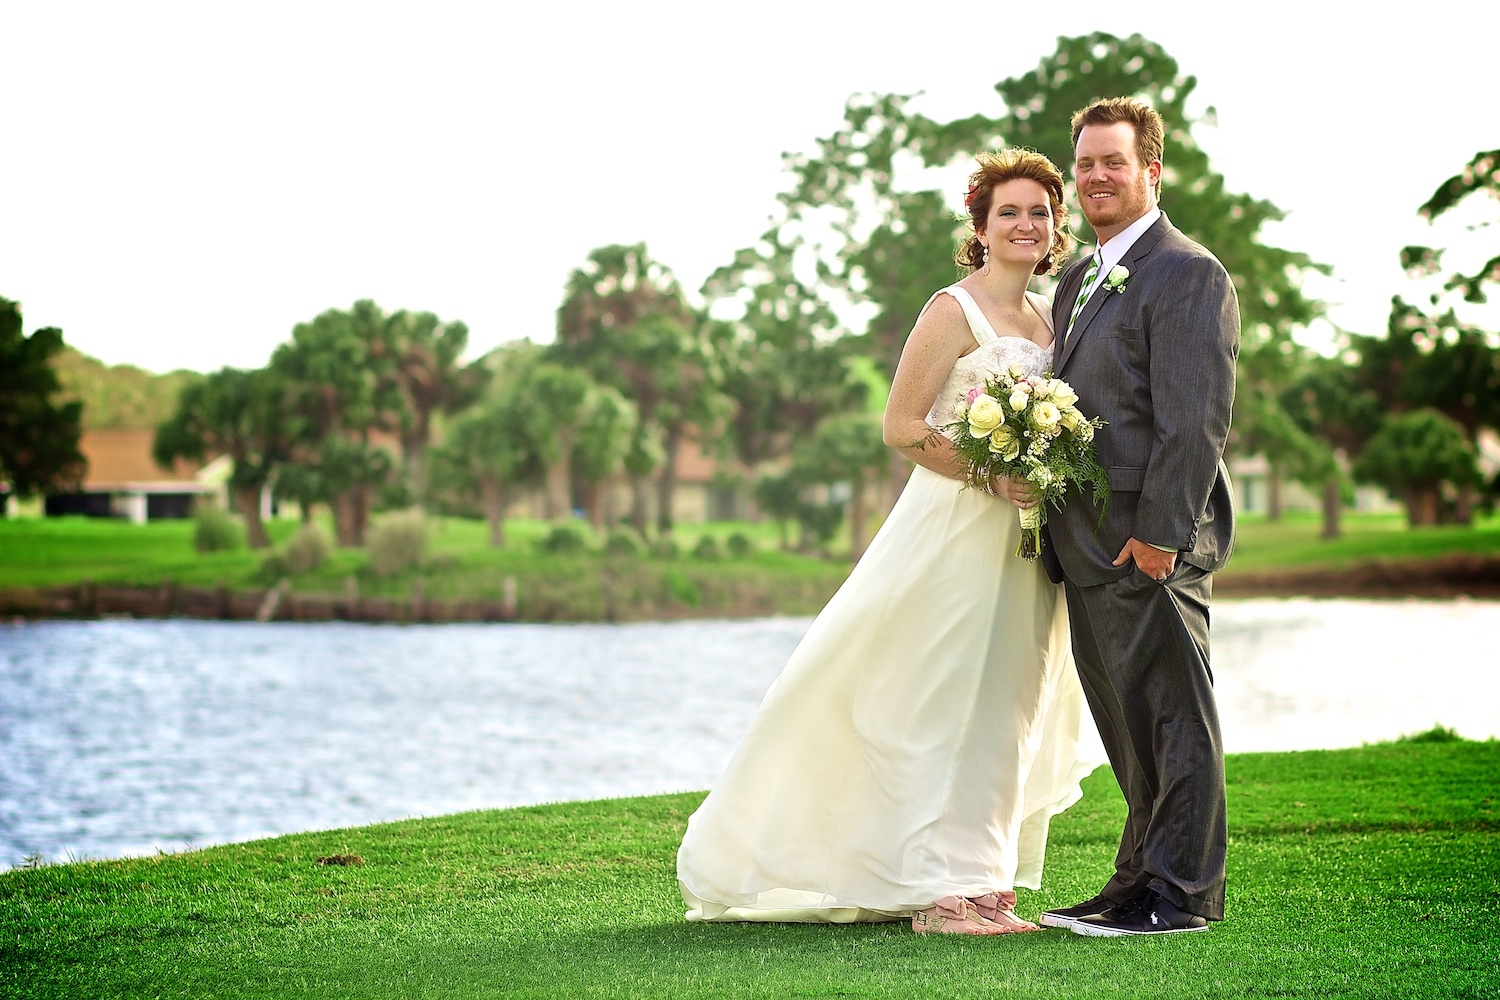 FL Bride and groom portrait photography